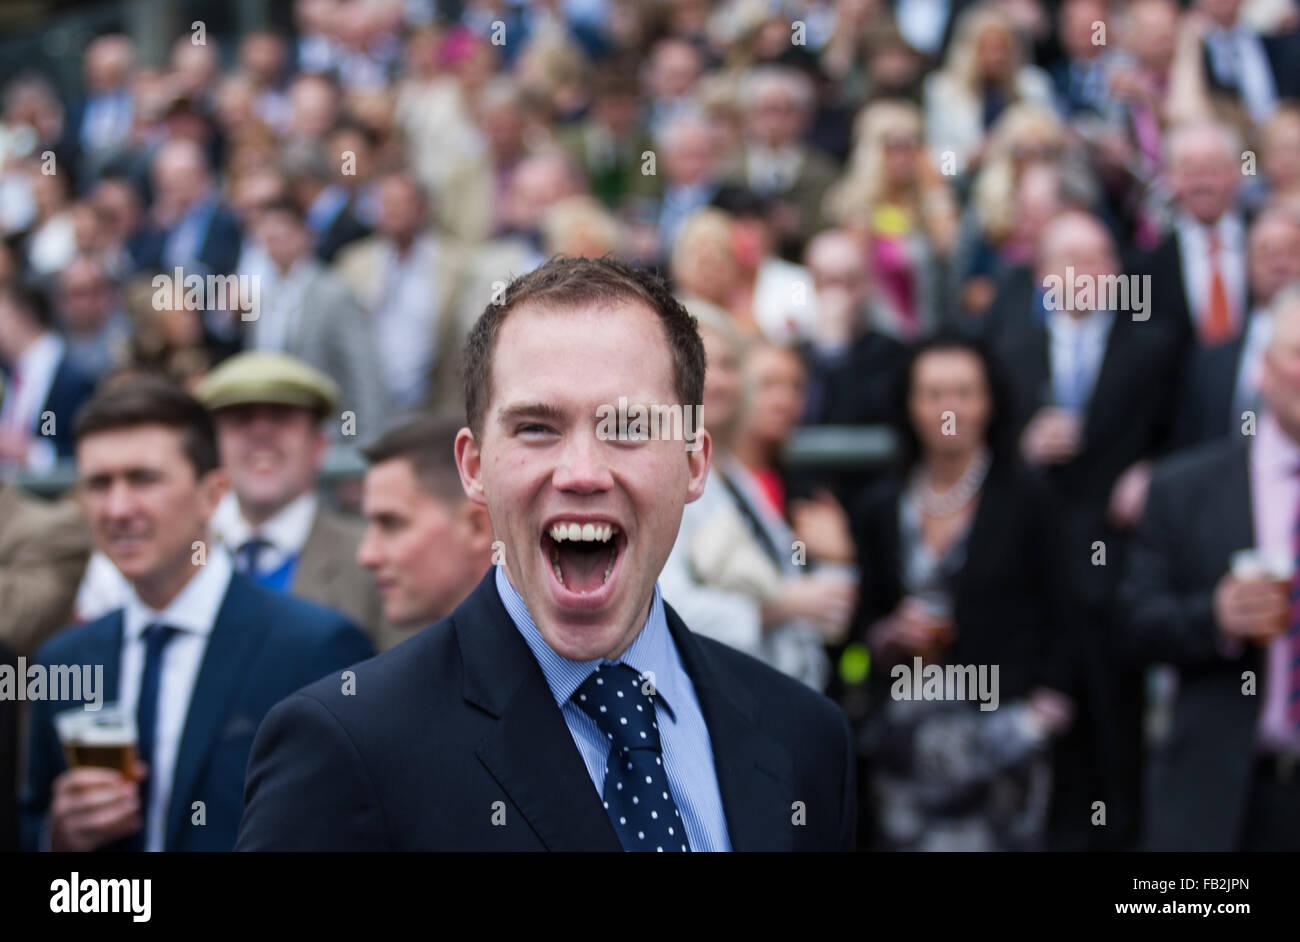 A racegoer celebrates his horse winning at the 2014 Grand National at Aintree in Liverpool, UK. Stock Photo